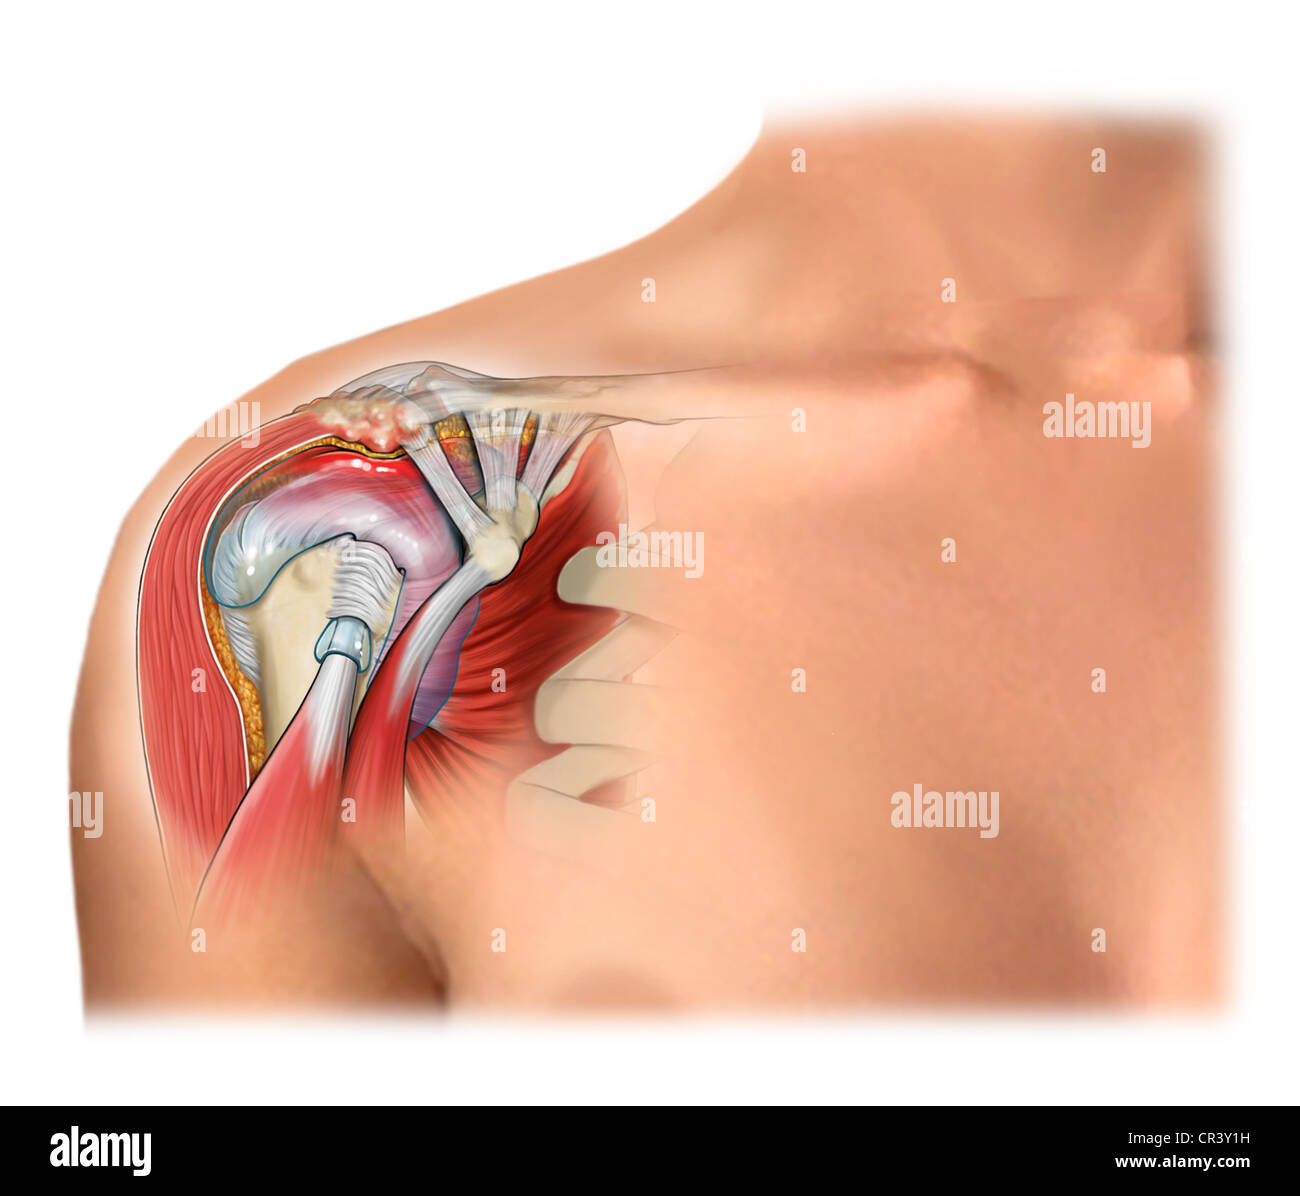 Soft Tissue Impingement in the Shoulder Stock Photo: 48644893 - Alamy